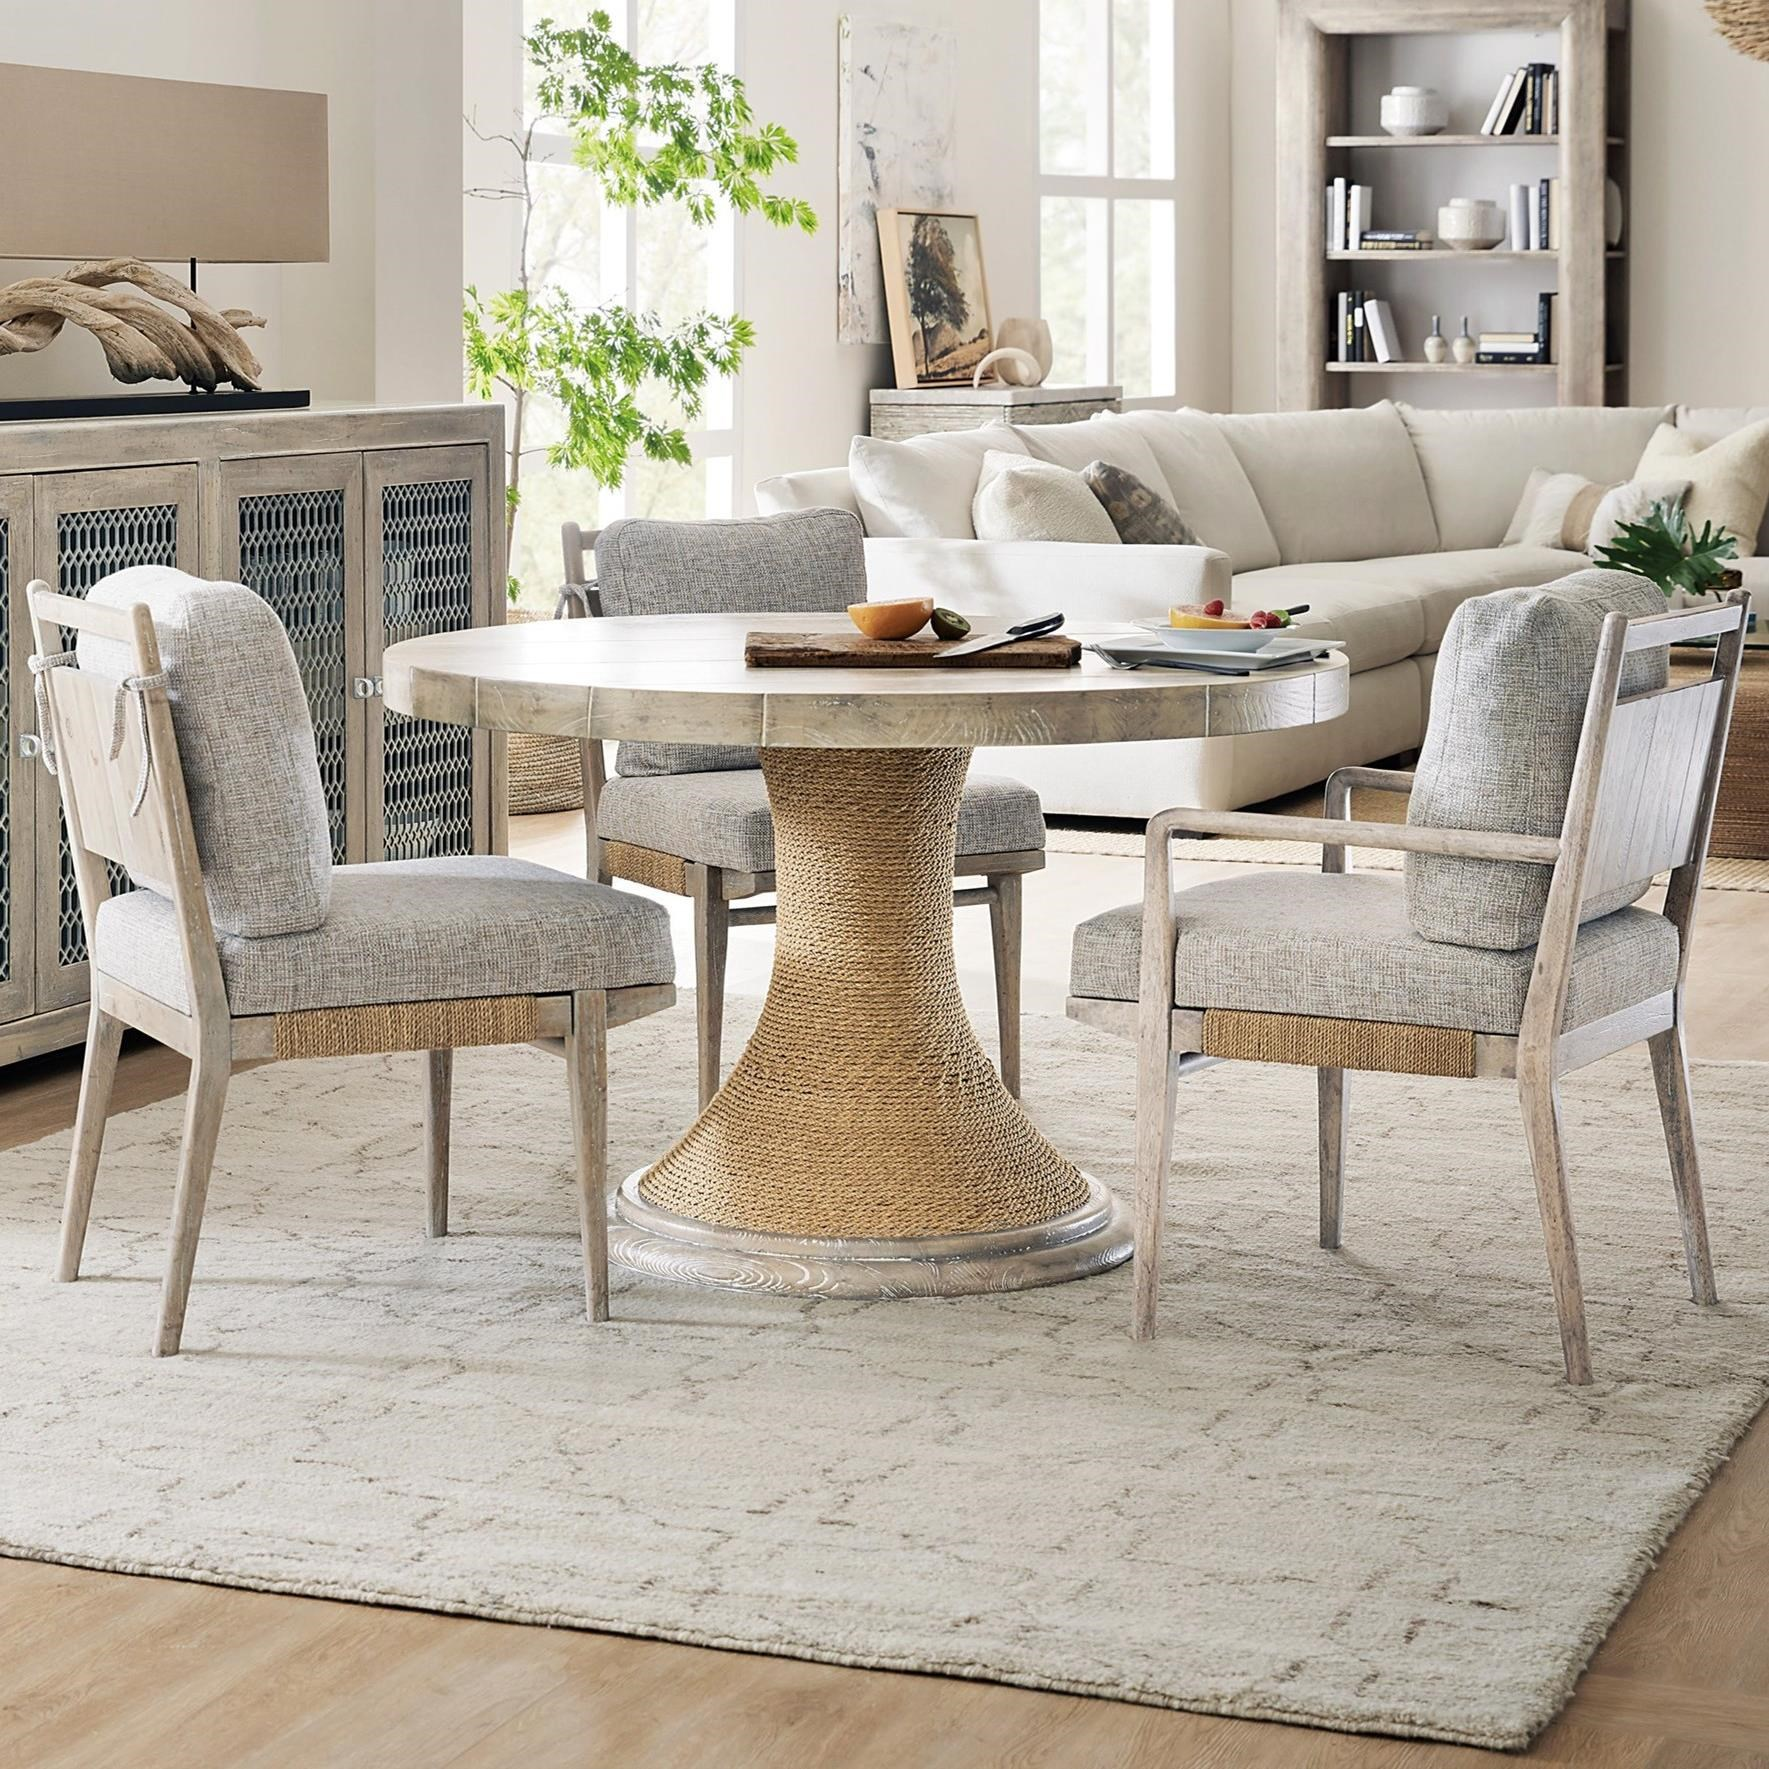 American Life-Amani 4-Piece Table and Chair Set by Hooker Furniture at Baer's Furniture